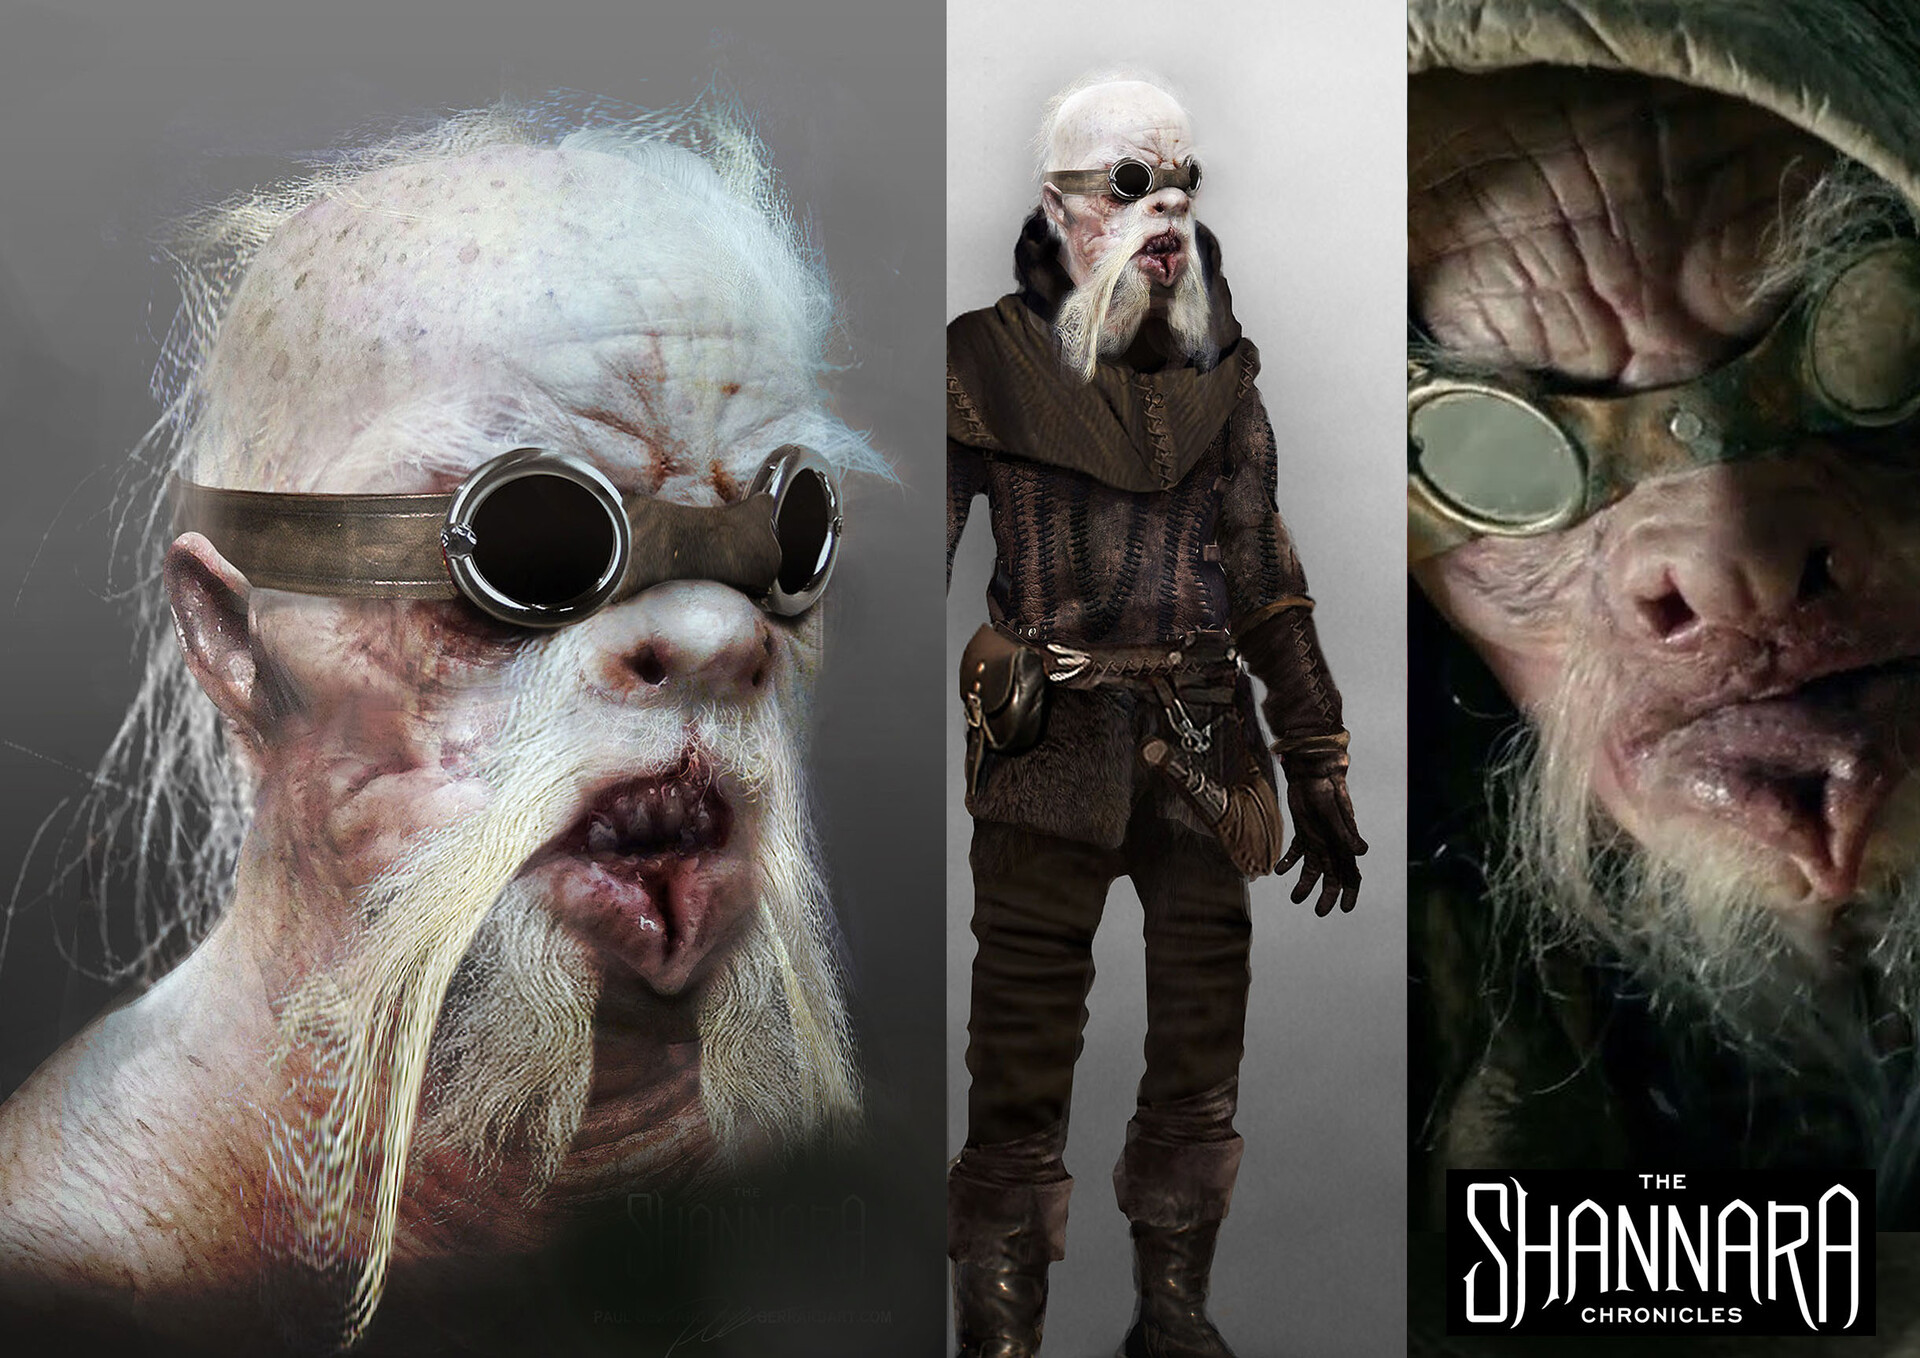 Slanter Gnome from The Shannara Chronicles.